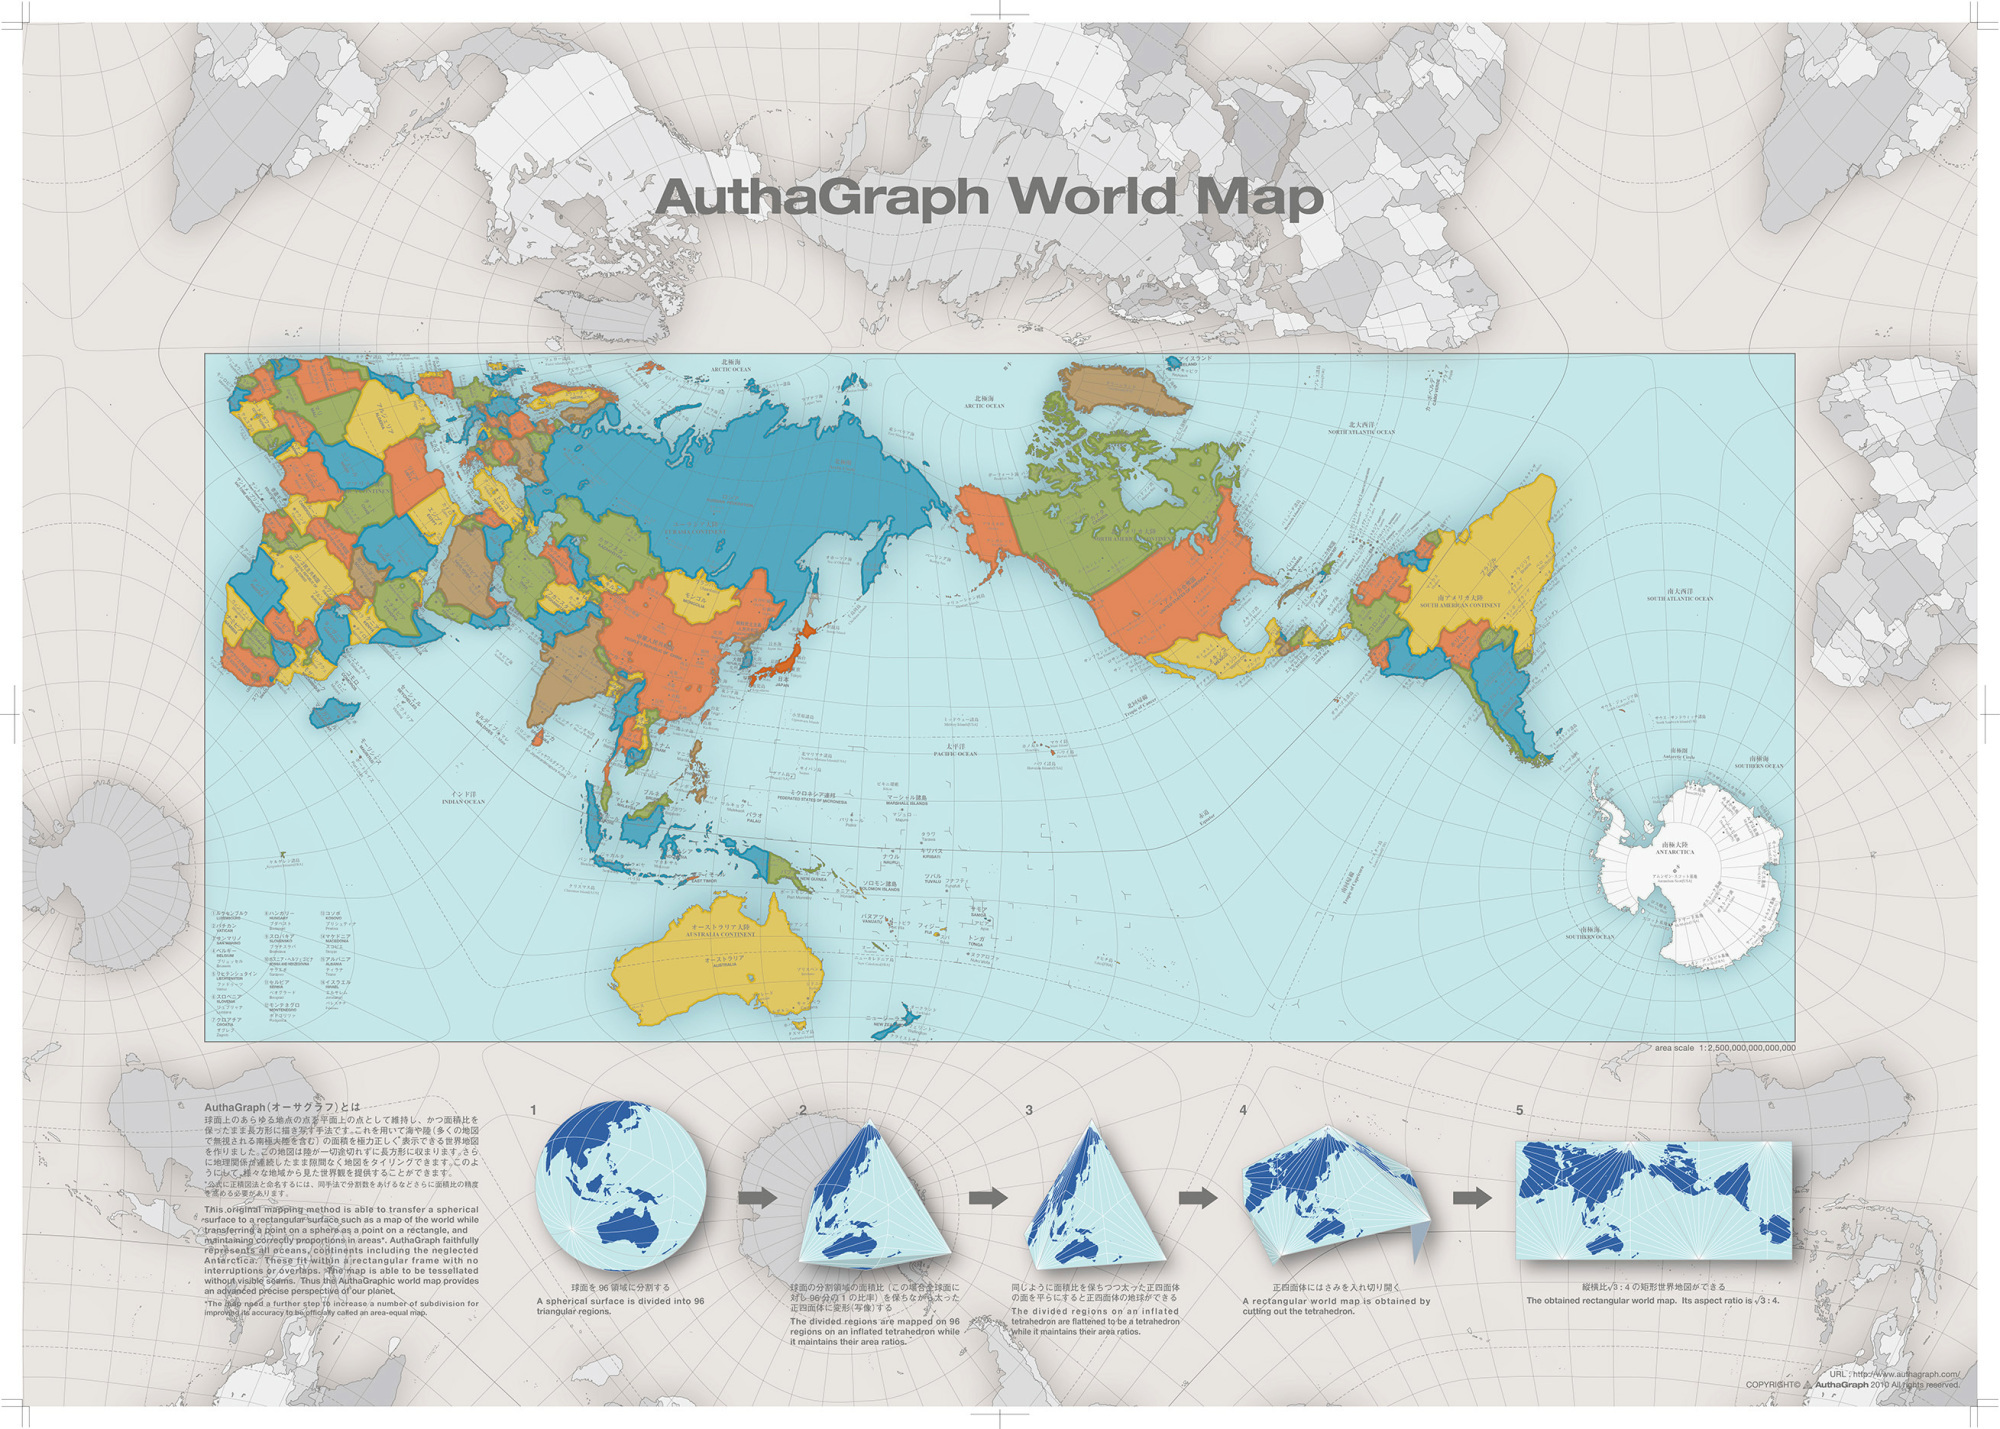 More Accurate World Map Wins Prestigious Japanese Design ... on world map with all continents, world map unlabeled, earth divided into continents, atlas divided into continents, world map of continents identified, names of continents, world map outline continents, simple map of continents,